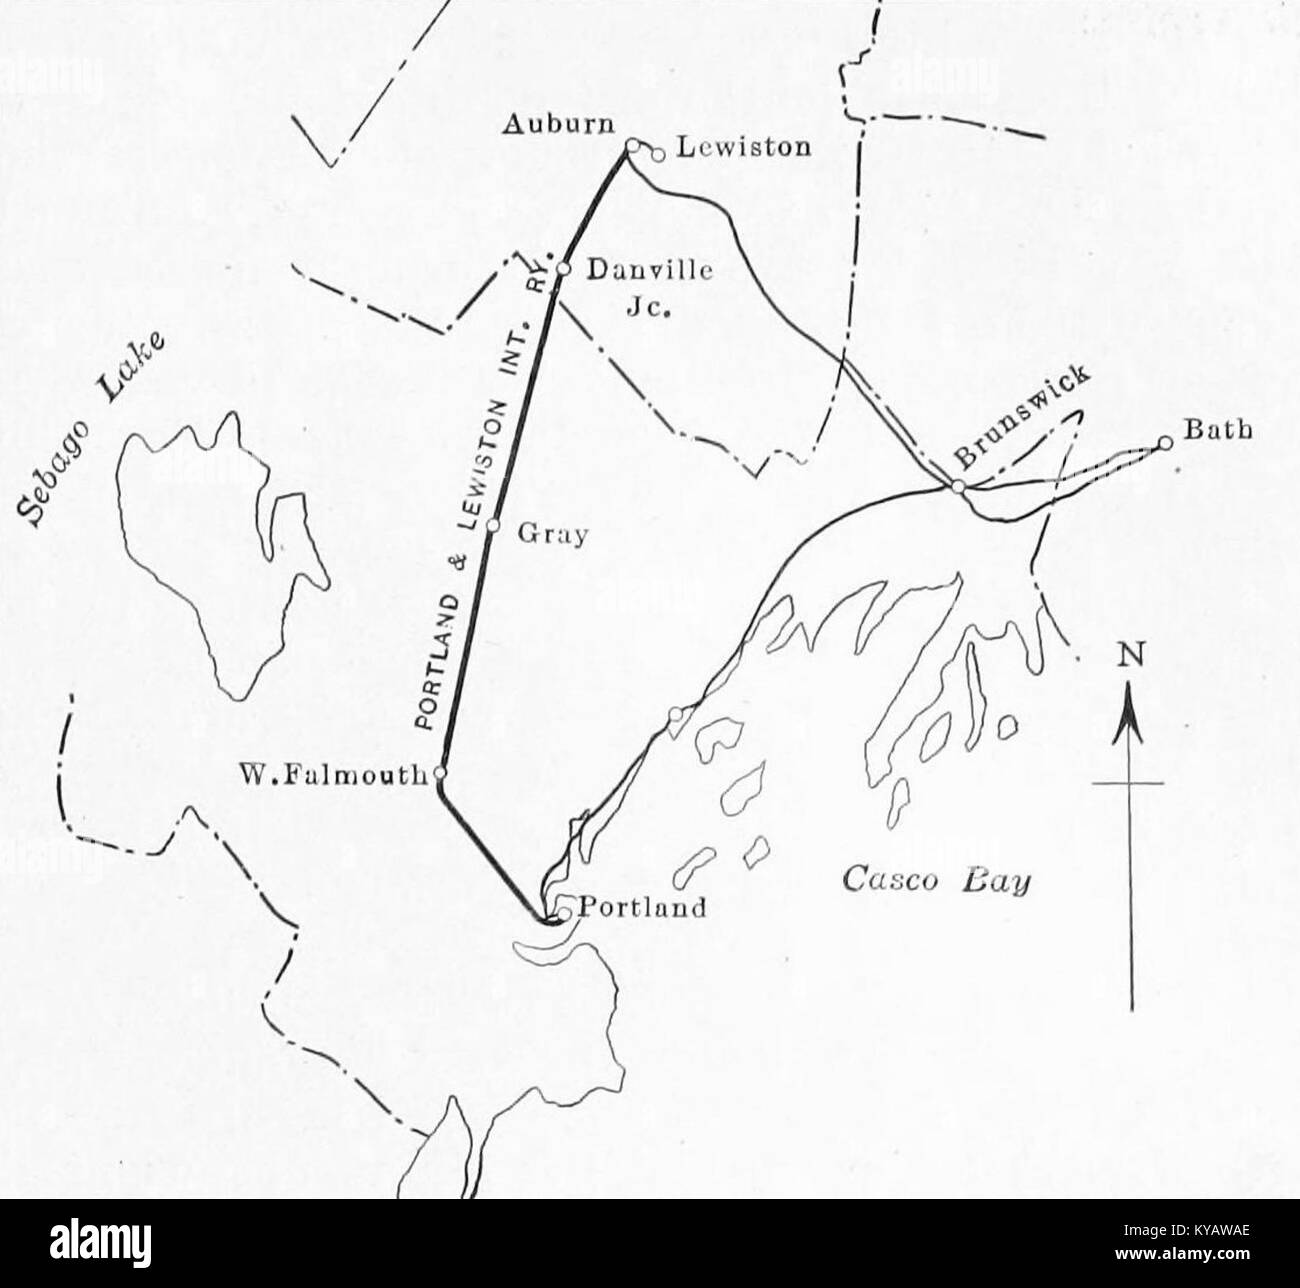 Map of PortlandLewiston Interurban and connecting lines 1915 Stock